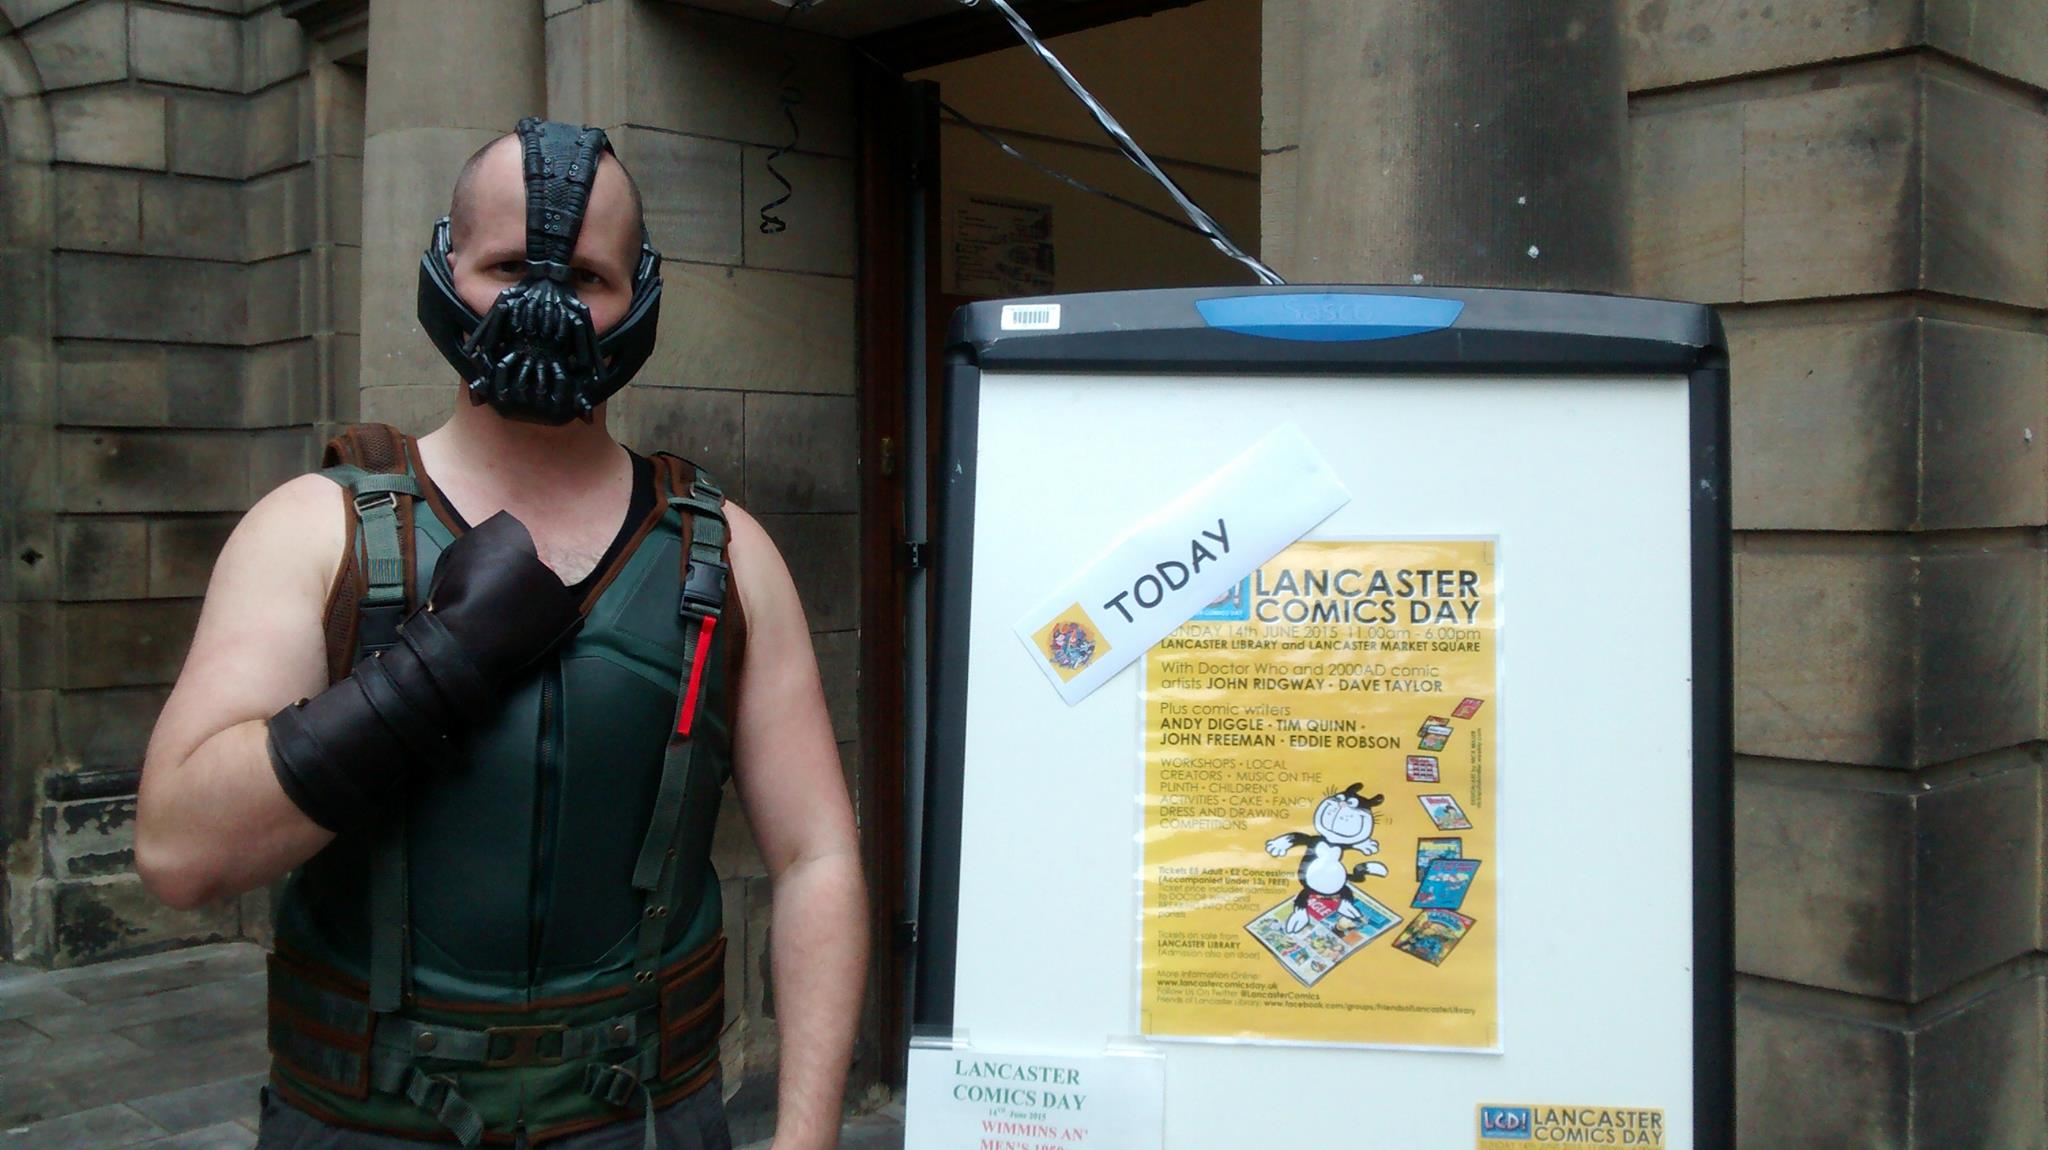 Super villains failed to put off comics fans from enjoying Lancaster Comics Day! Photo courtesy Friends of Lancaster Comics Day